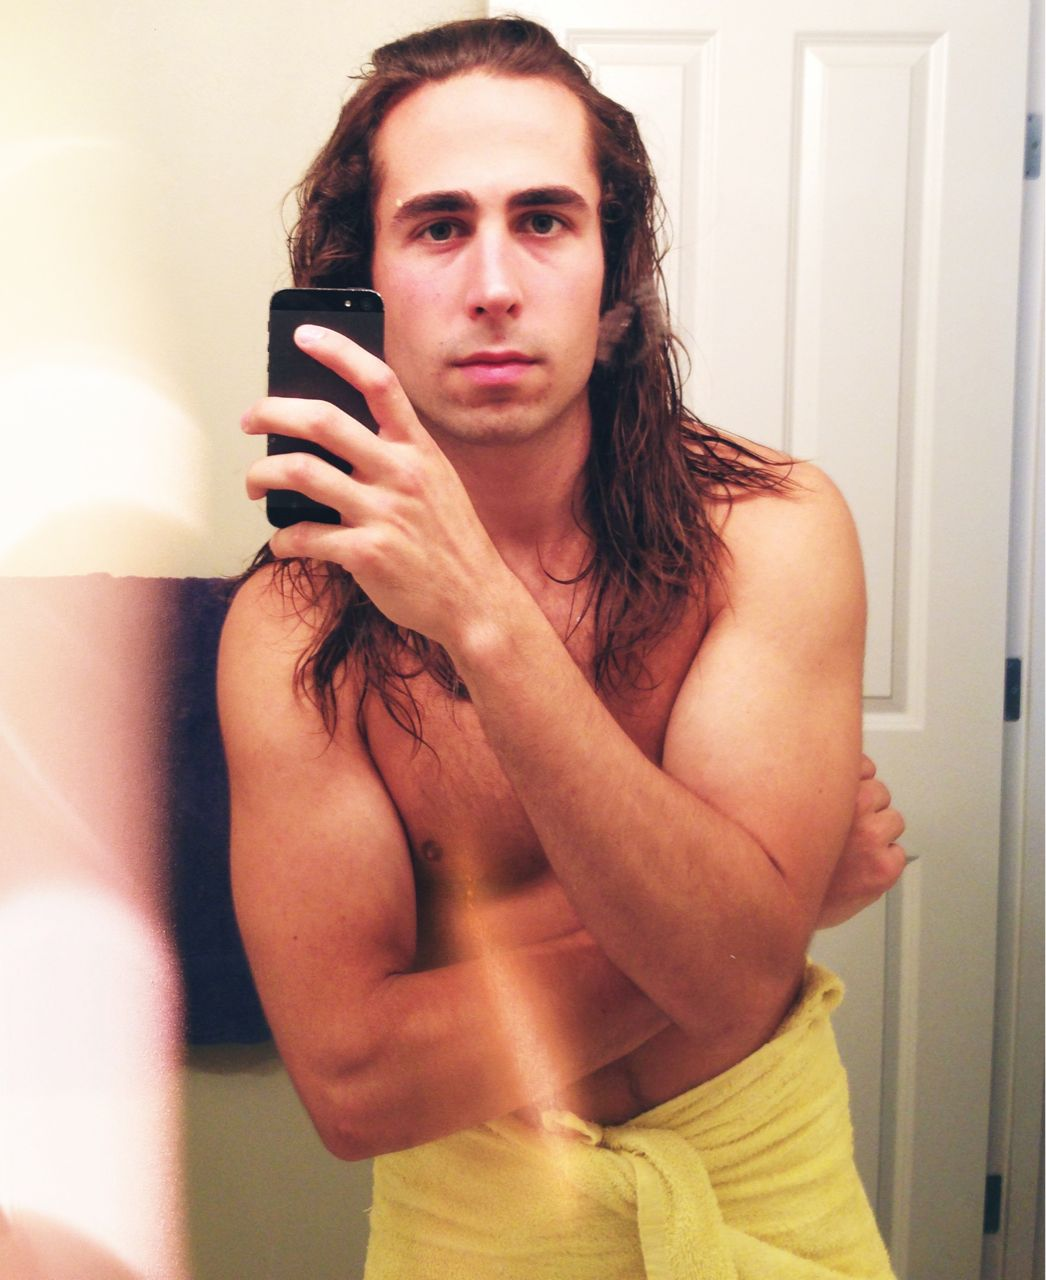 Long Hair After A Shower  Long Haired Men  Pinterest  Long haired